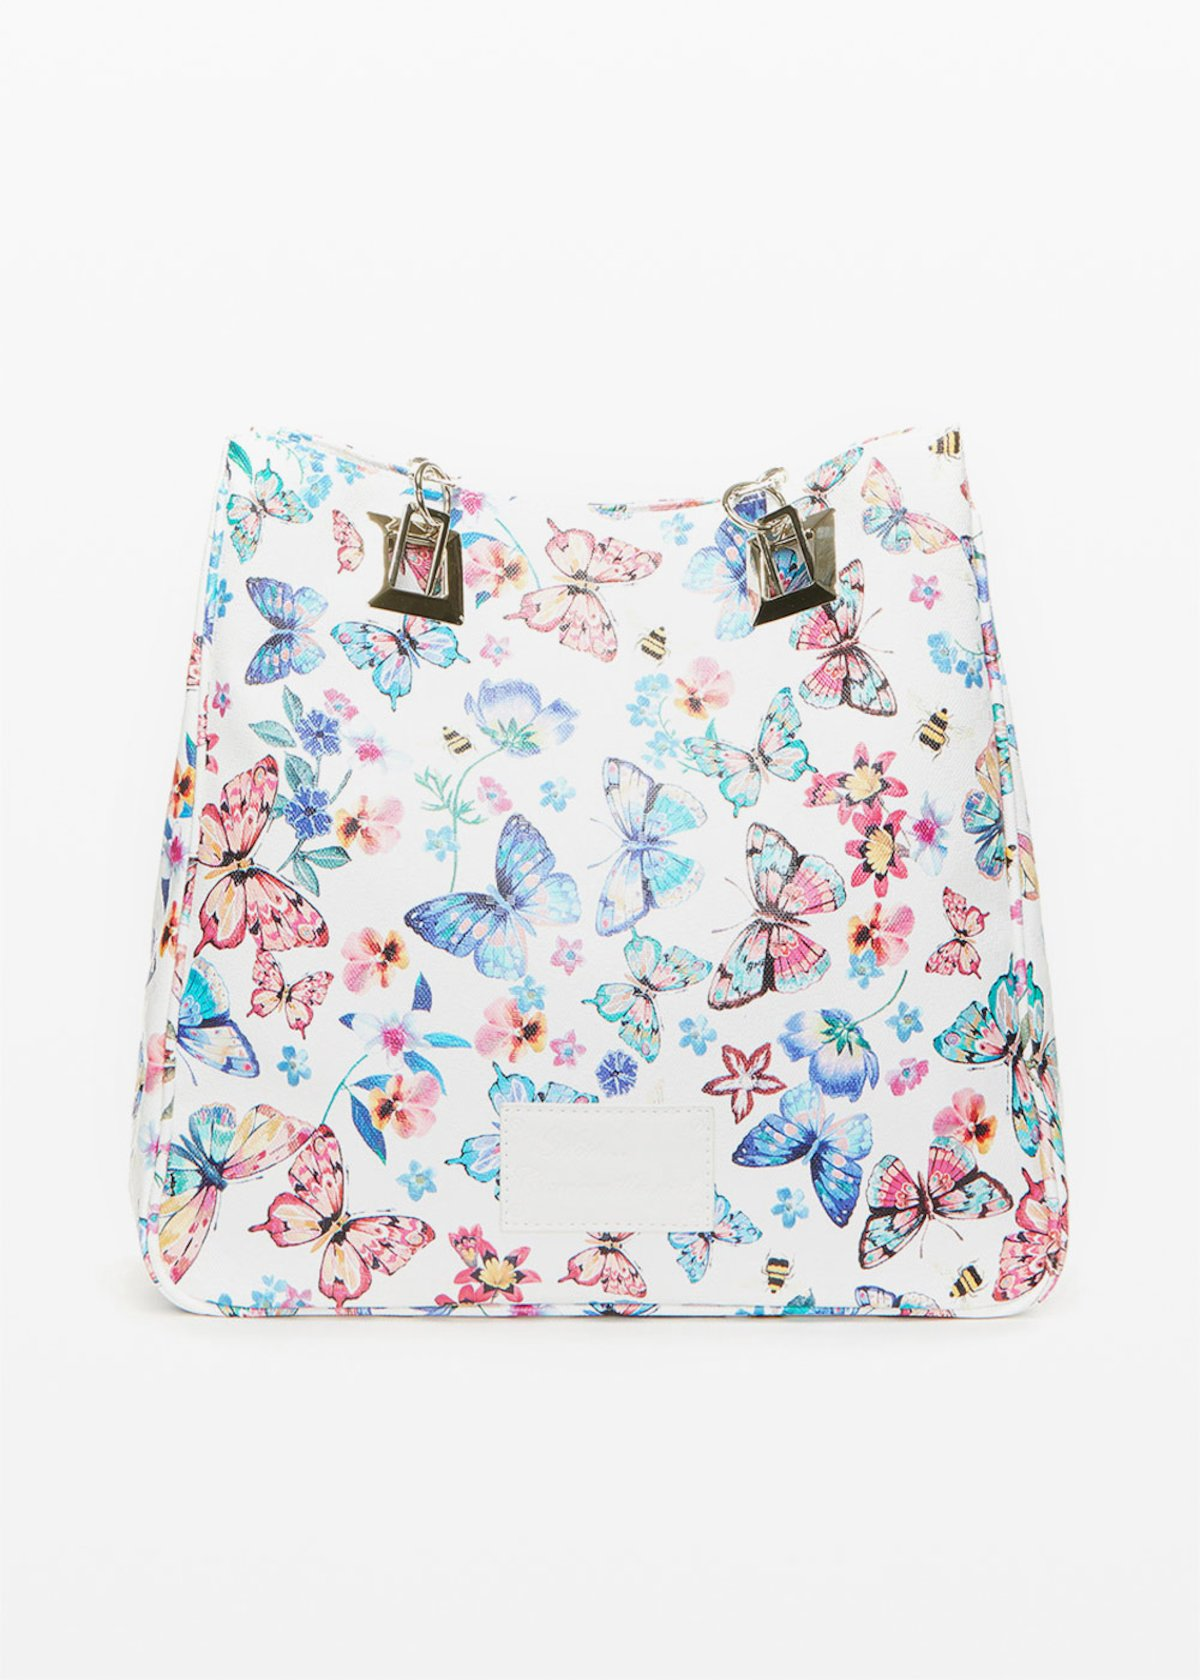 Minibufl faux leather shopping bag butter-flowers print - White Fantasia - Woman - Category image